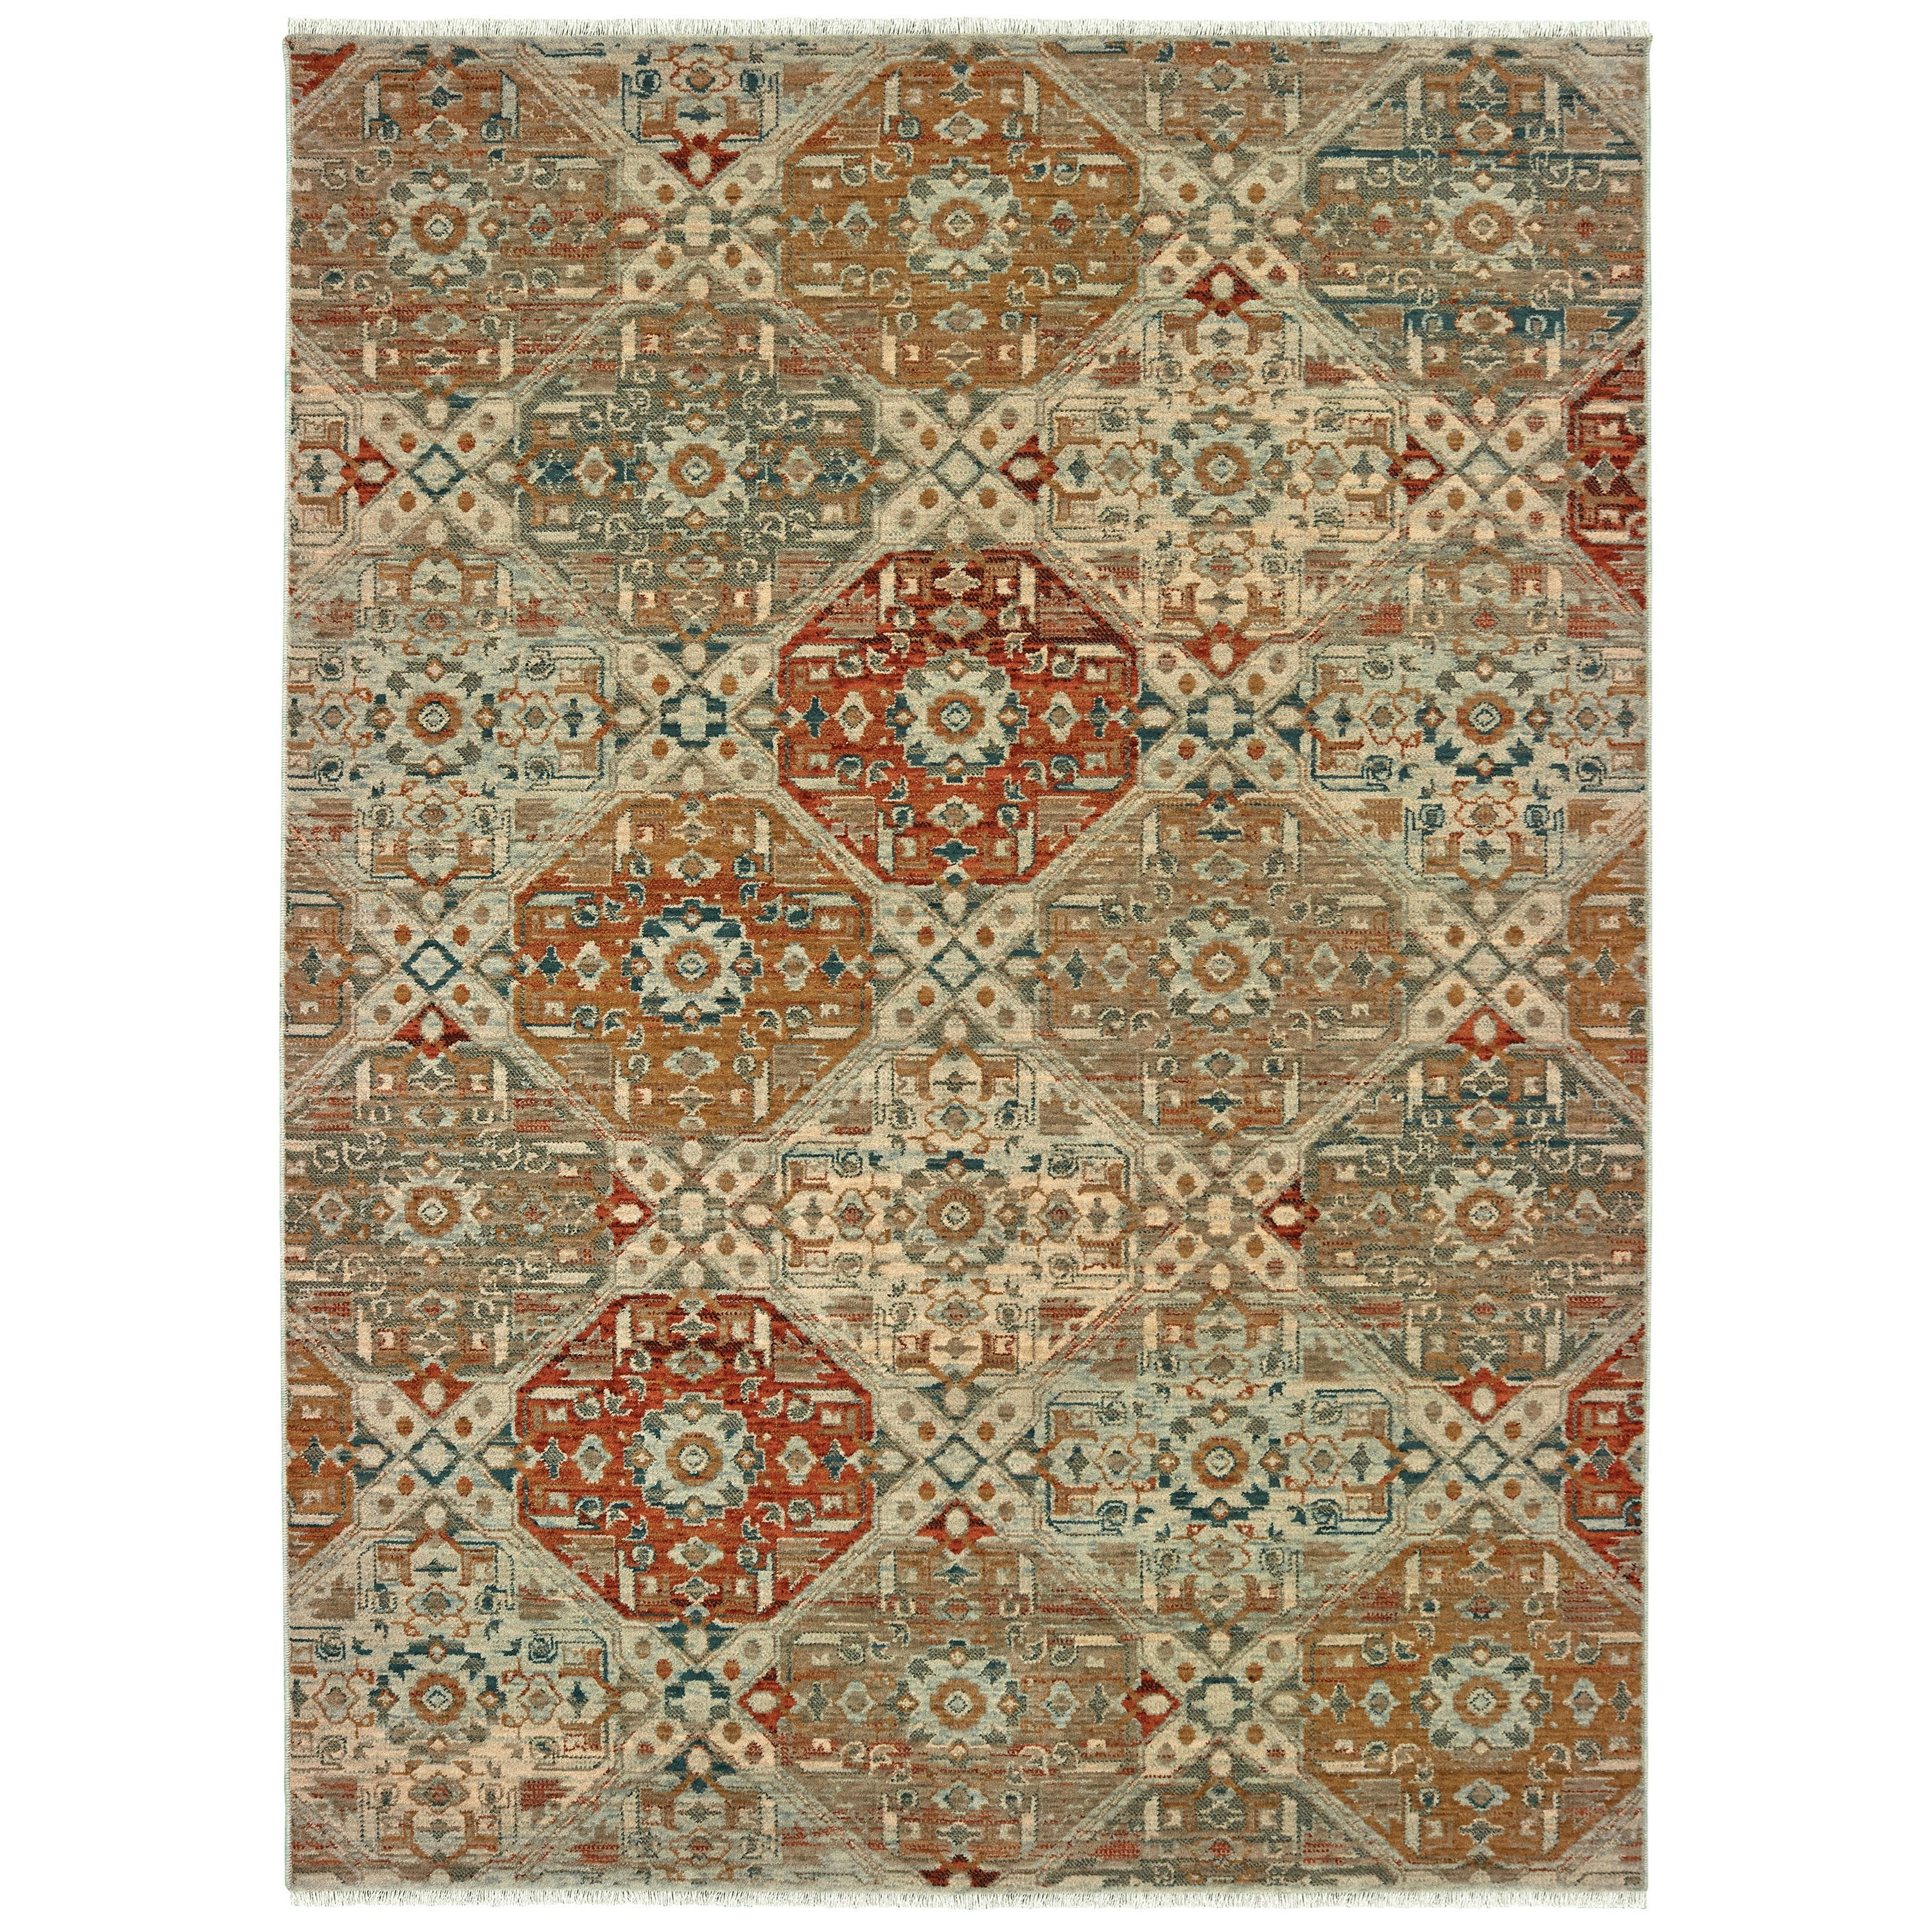 "Anatolia 9'10"" X 12'10"" Rectangle Rug by Oriental Weavers at Steger's Furniture"